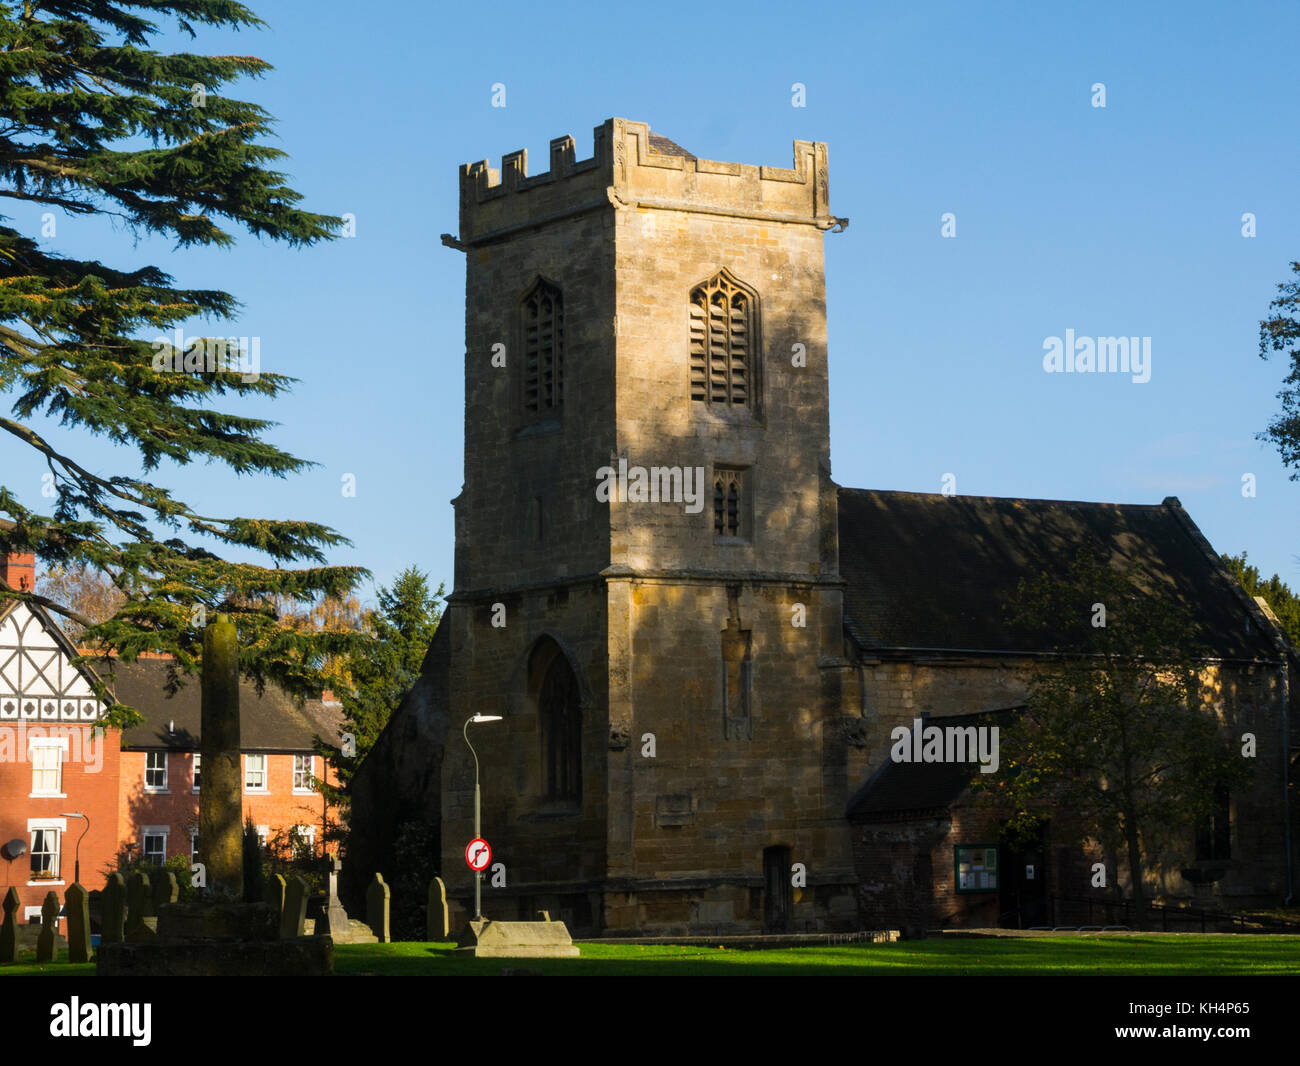 St Andrew's Centre Pershore Abbey Worcestershire England UK built to serve tenants of  Abbot of Westminster - Stock Image